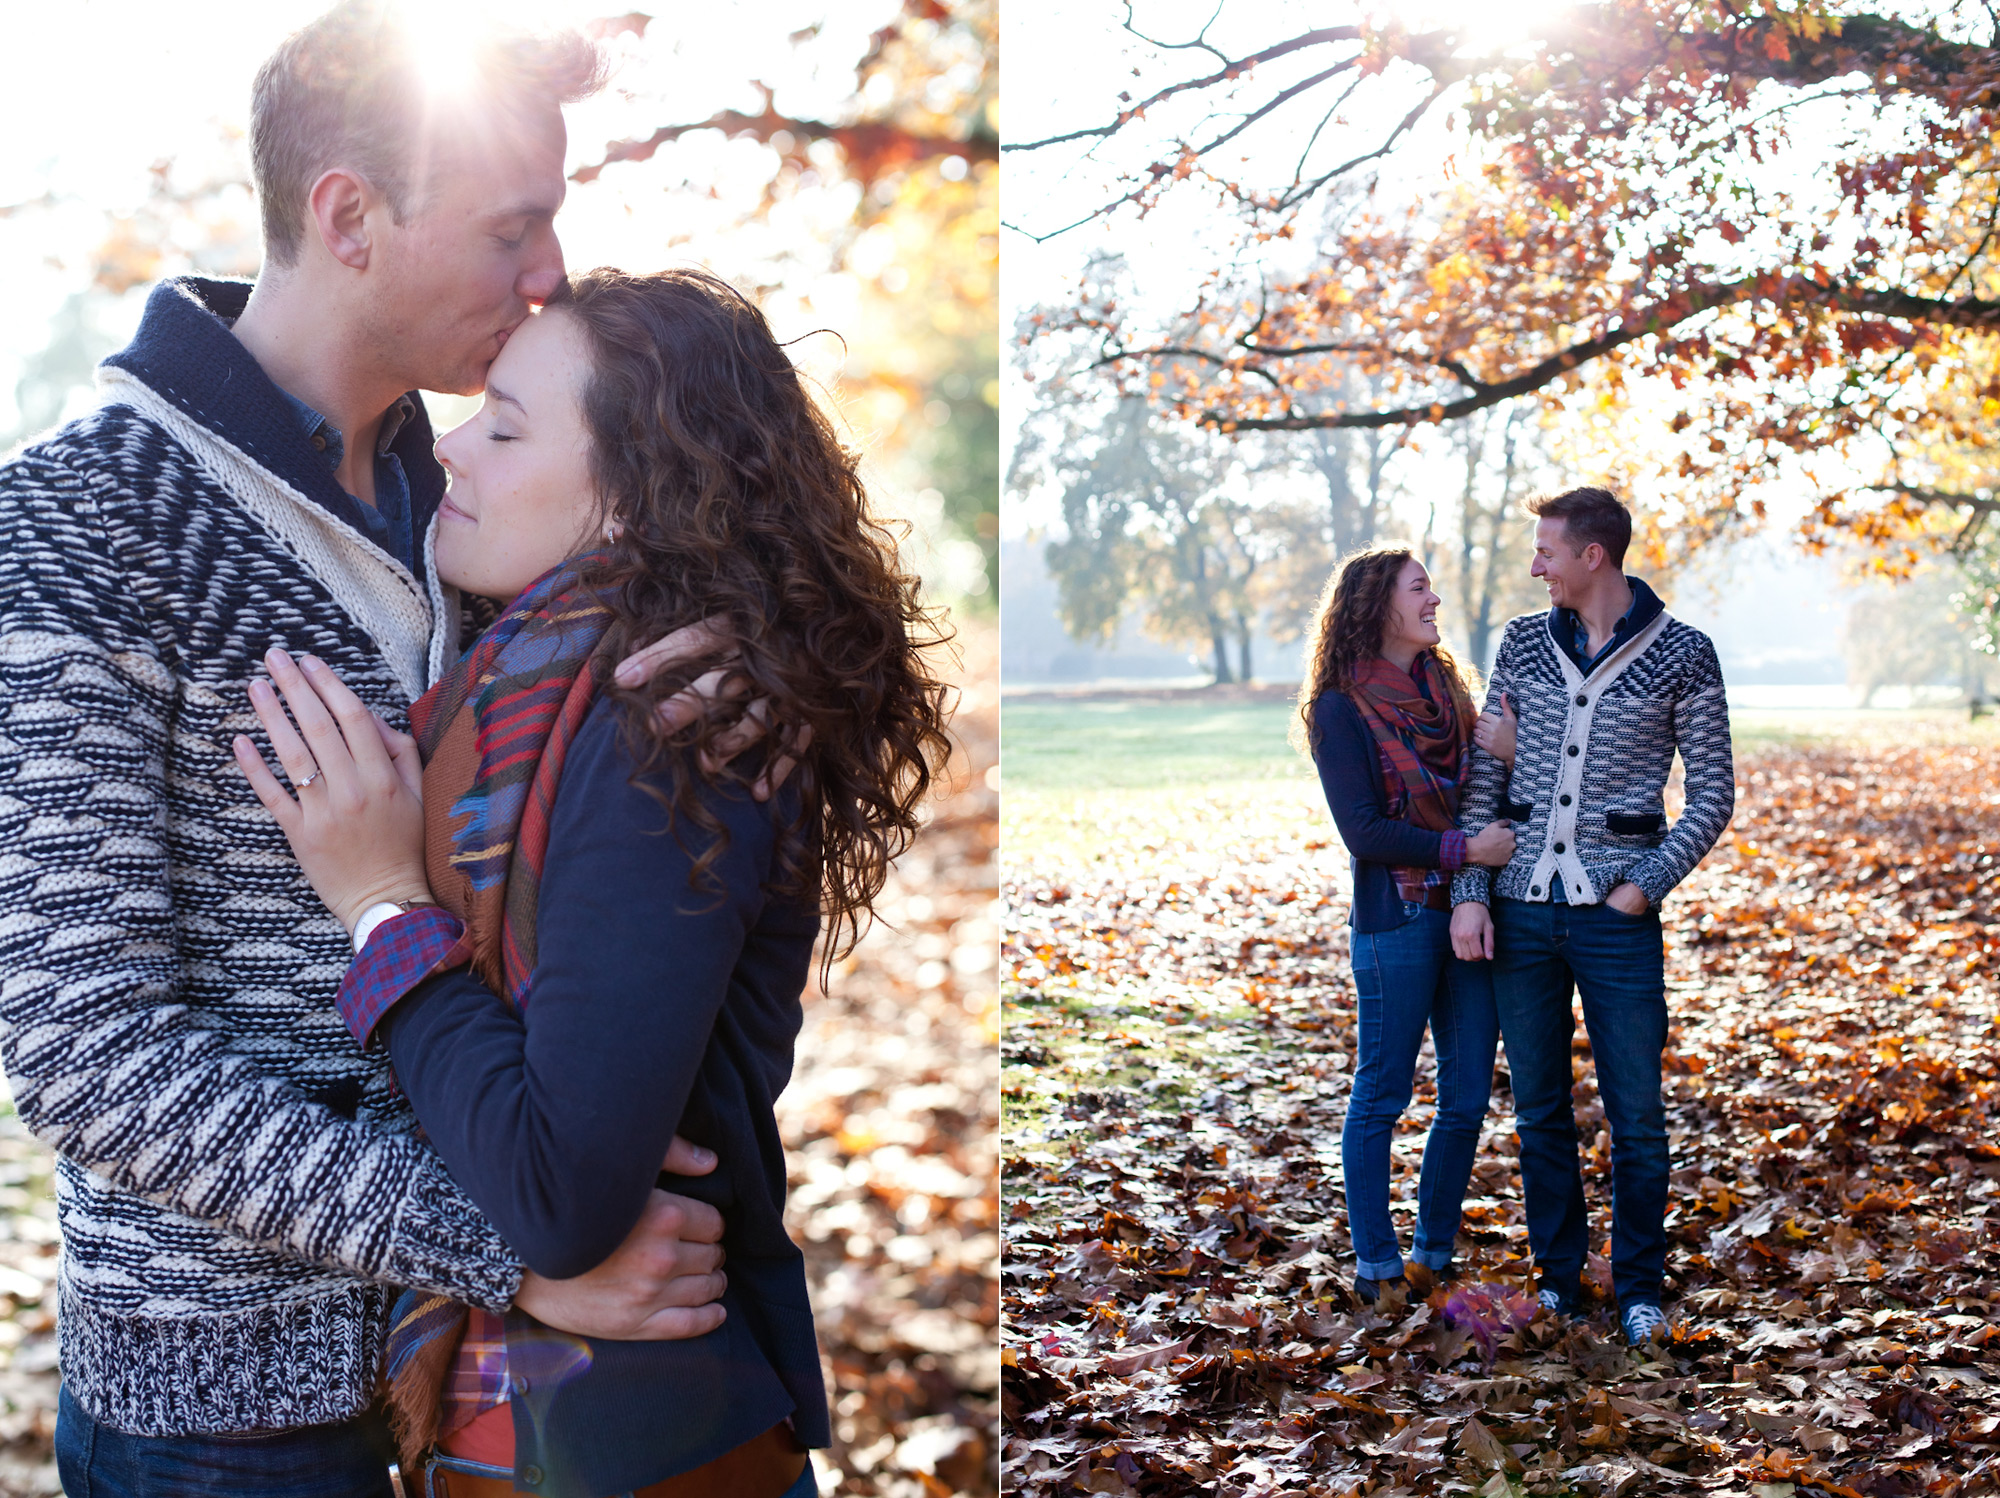 Julie & Jordy, engaged by Kelly Steenlandt